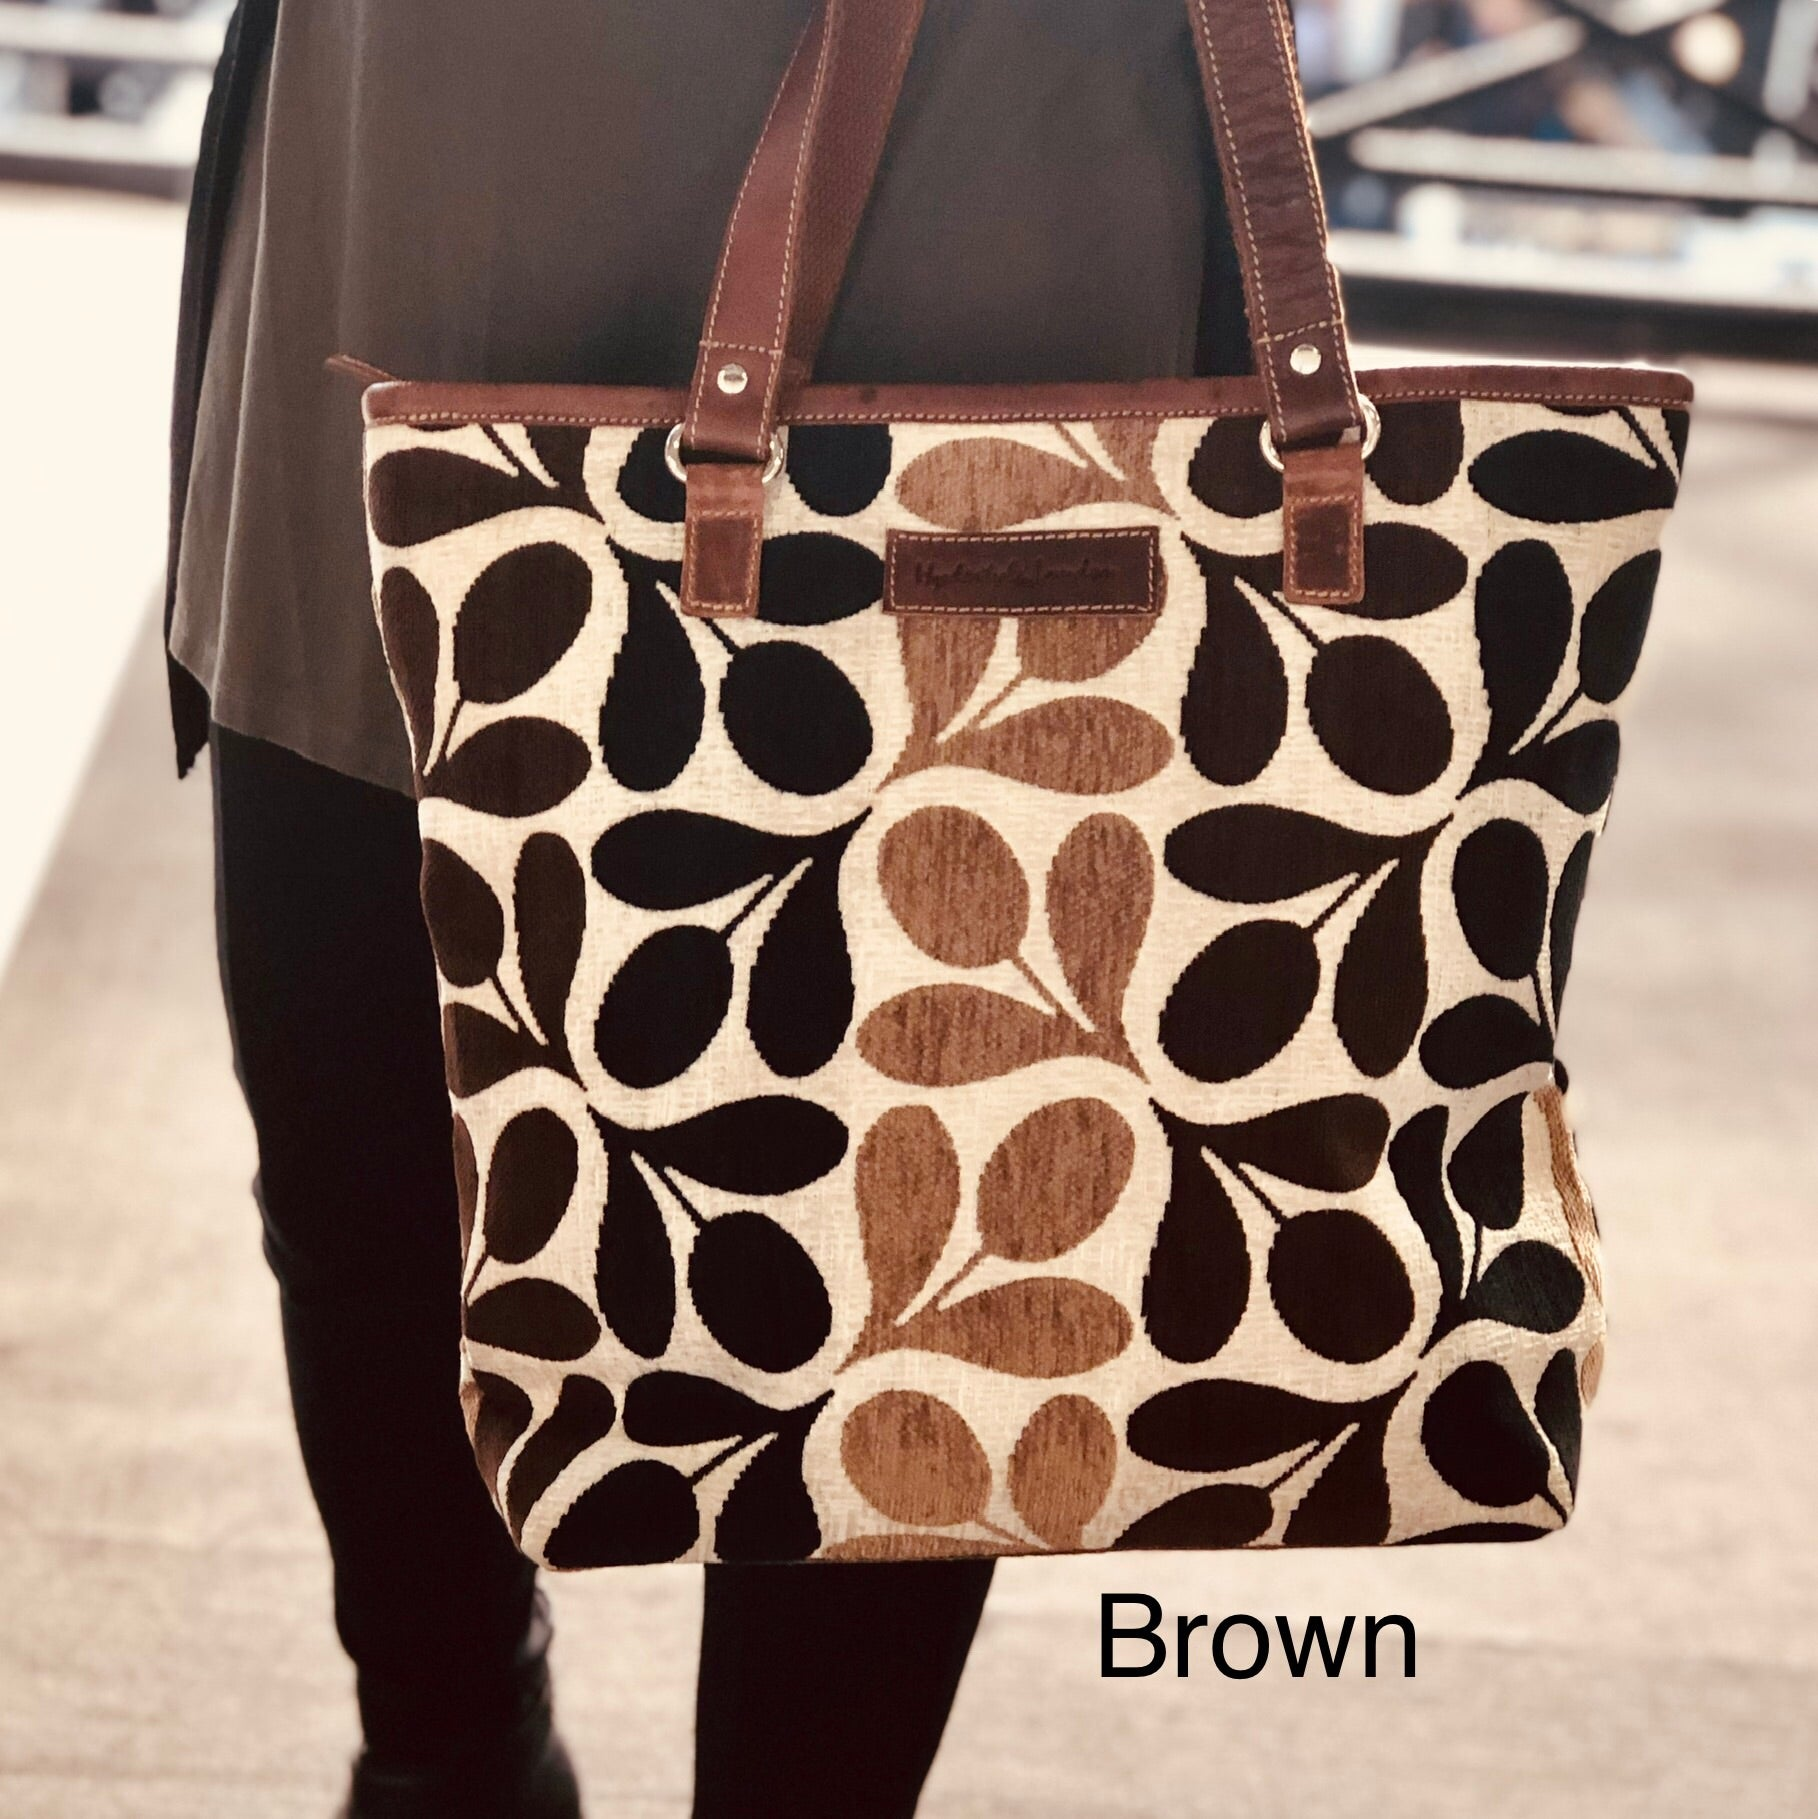 Tapestry with leather trims tote bag #LB409 Leaf-Brown